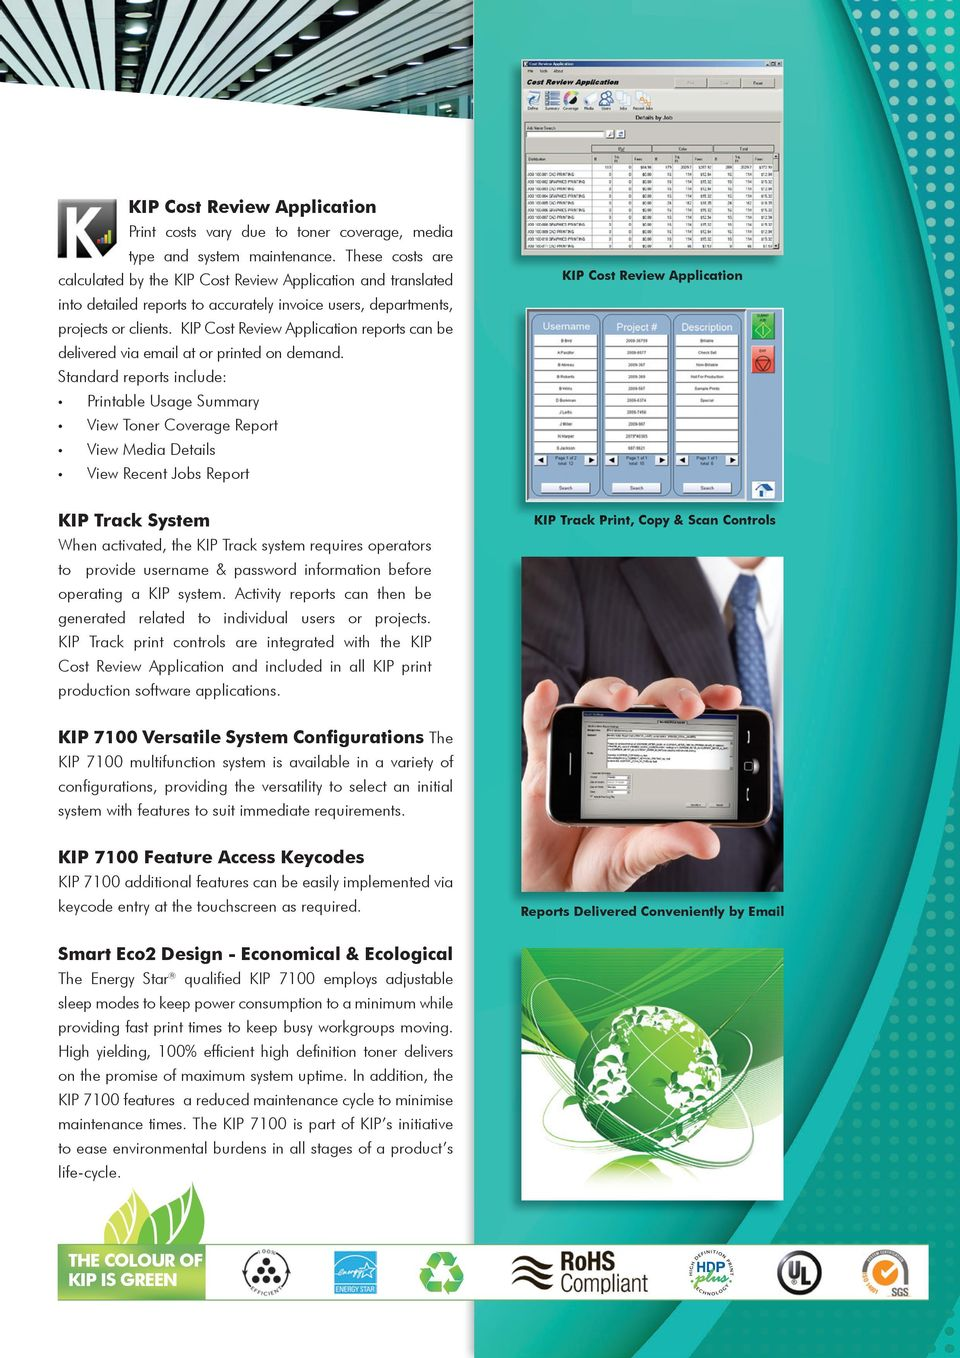 KIP Cost Review Application reports can be delivered via email at or printed on demand.